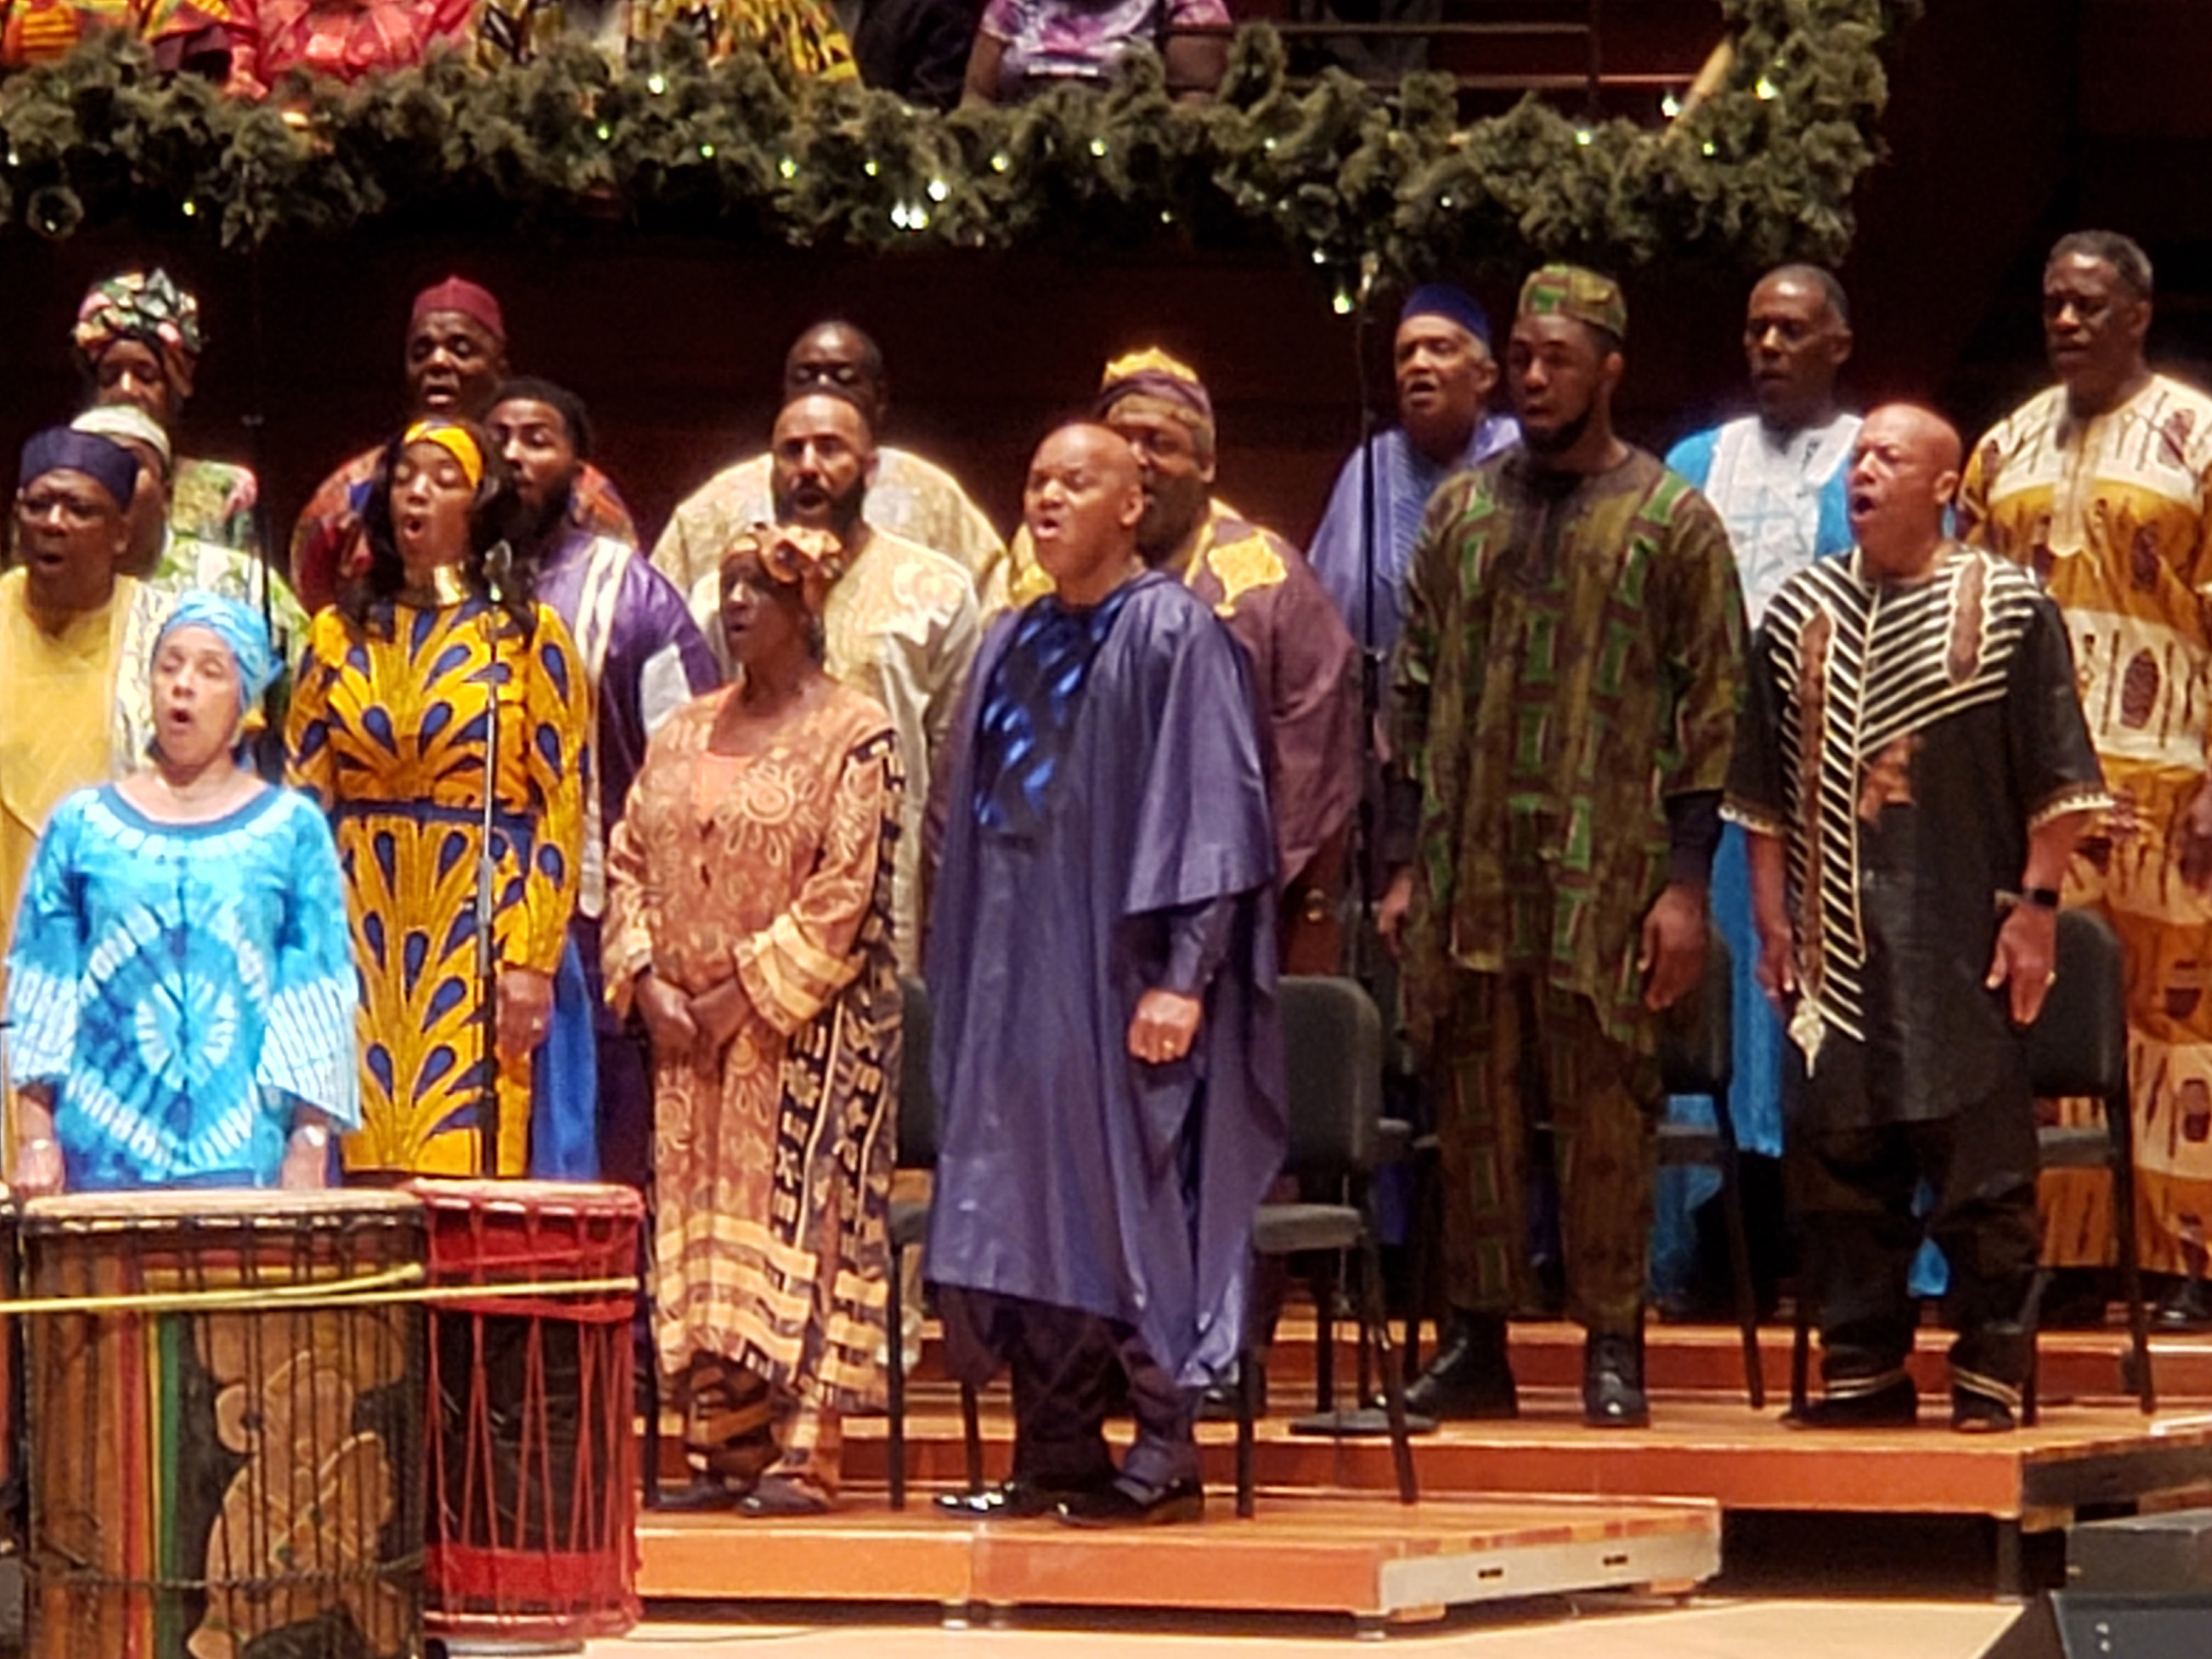 . I attended the Philadelphia Heritage Chorale Christmas concert at Kimmel Center in Philadelphia, PA. The choir was founded and conducted by Dr. Donald